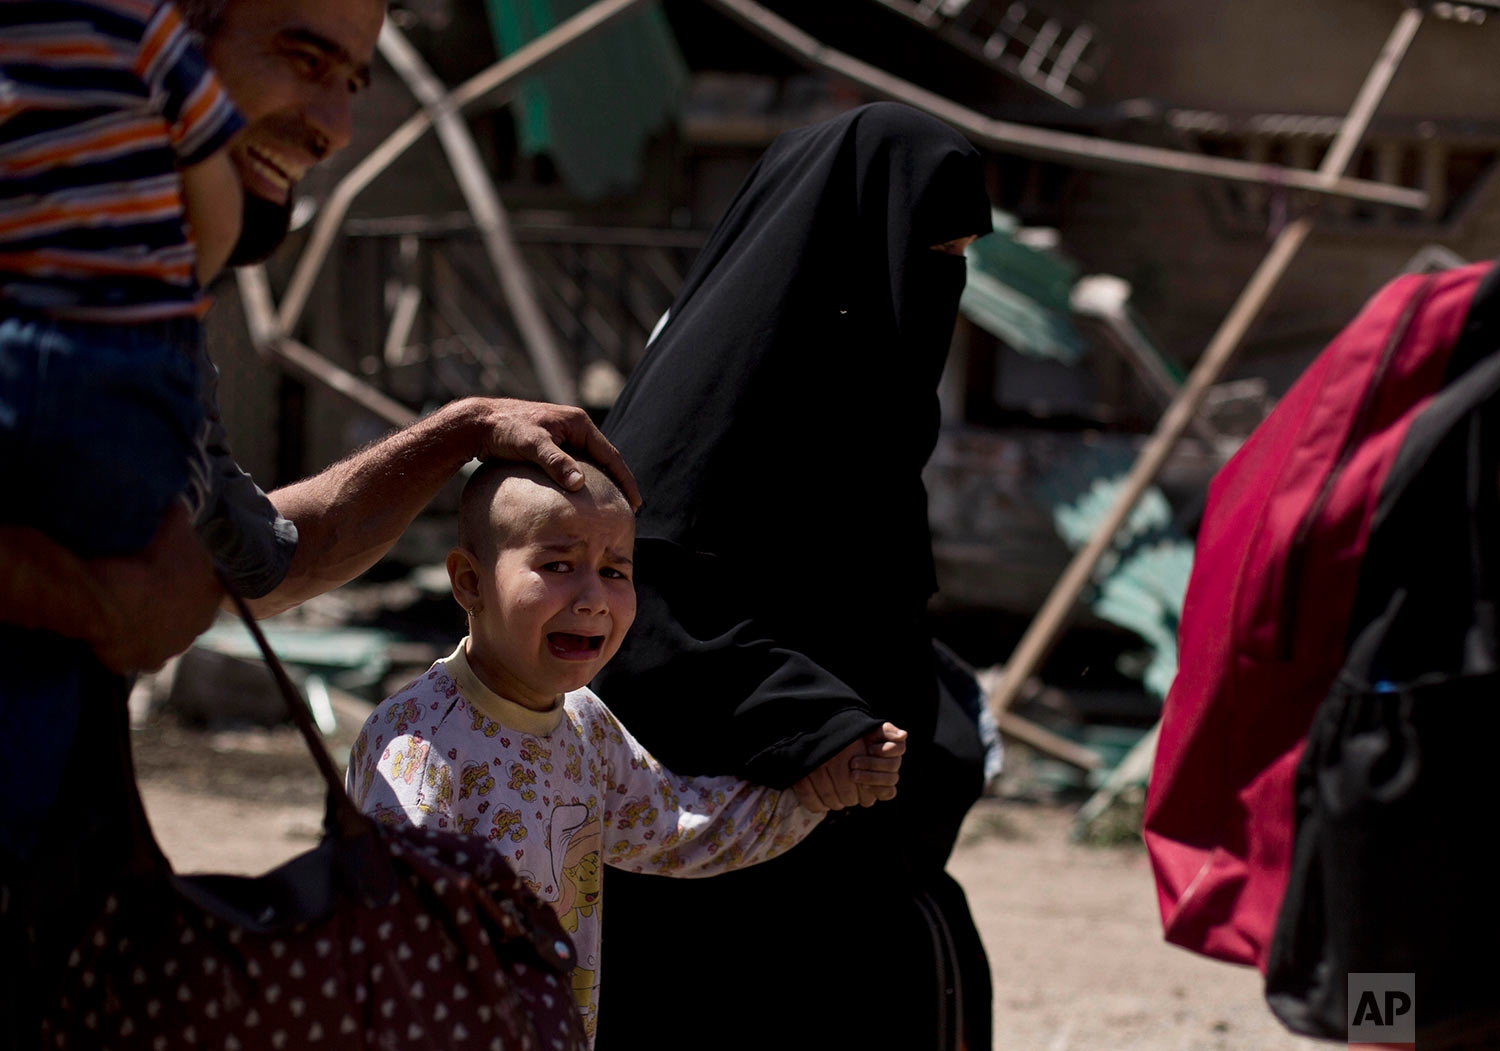 A girl with a shaved head and her father cry as the family flees the al-Rifai neighborhood while Iraqi special forces battle Islamic State militants in western Mosul, Iraq, Wednesday, May 17, 2017.(AP Photo/Maya Alleruzzo)